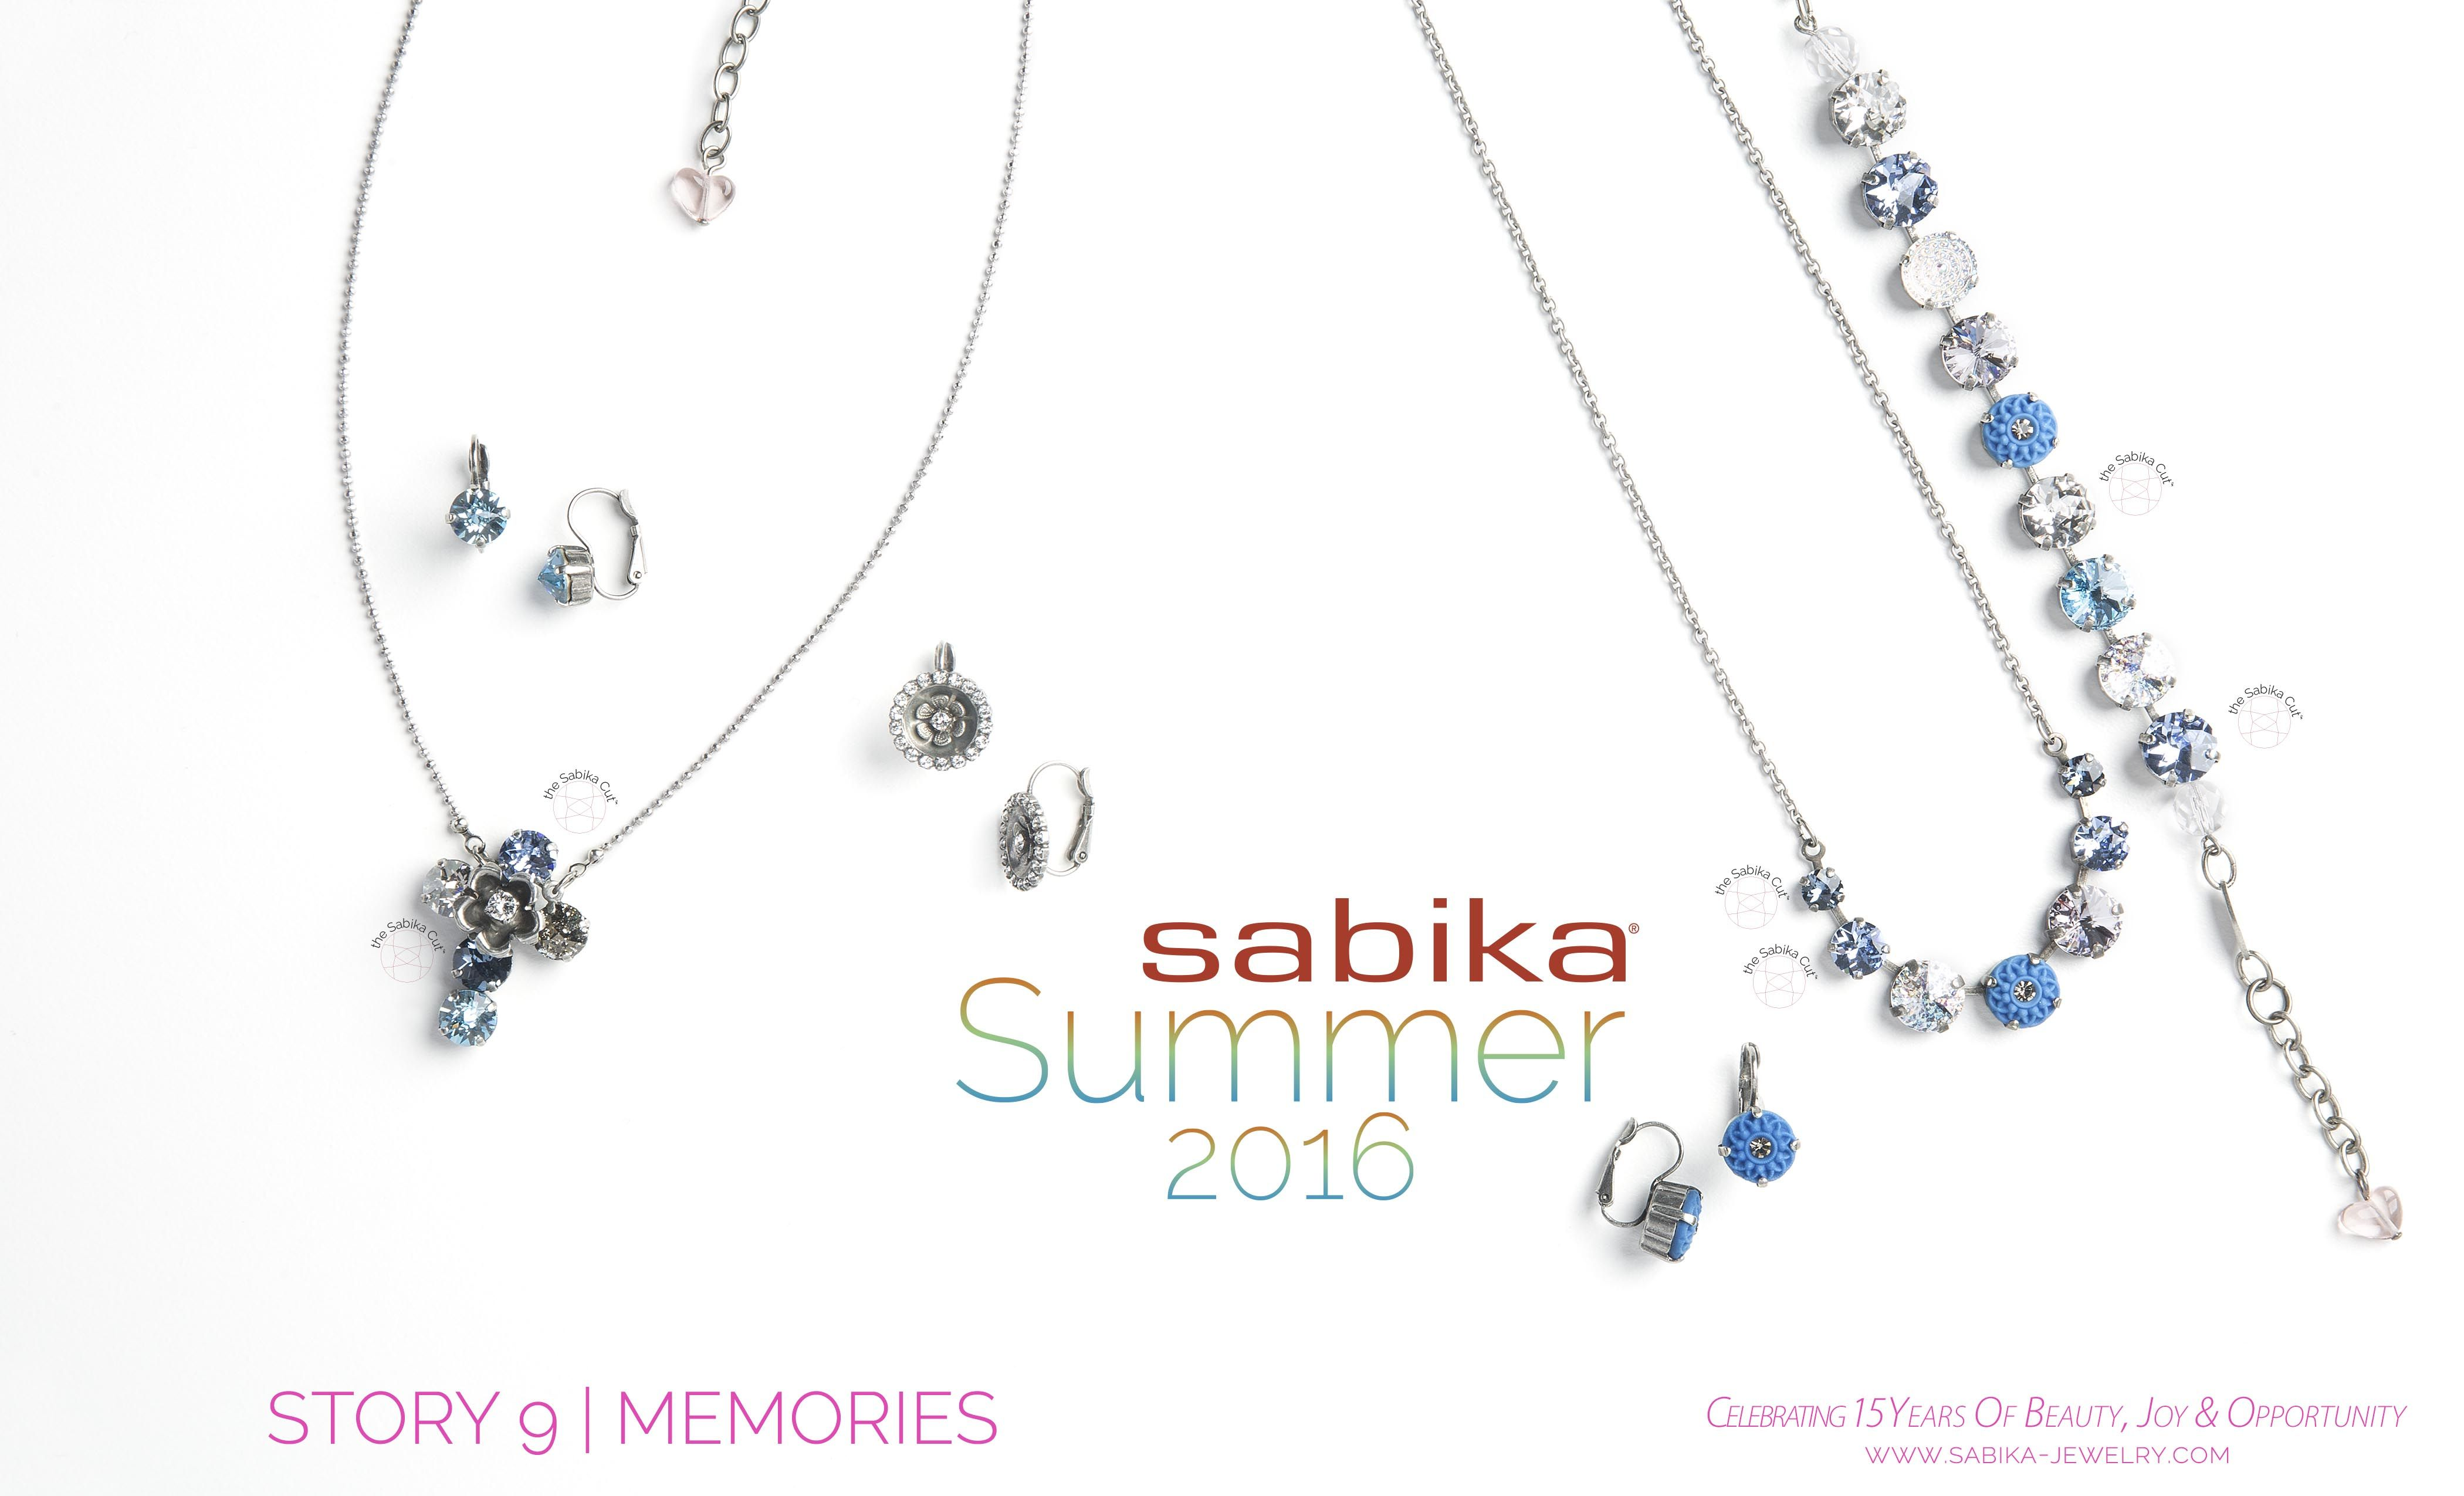 Sabika look necklace - Story 6 Luminescent Sabika Summer 2016 Story By Story Pinterest Bling And Summer